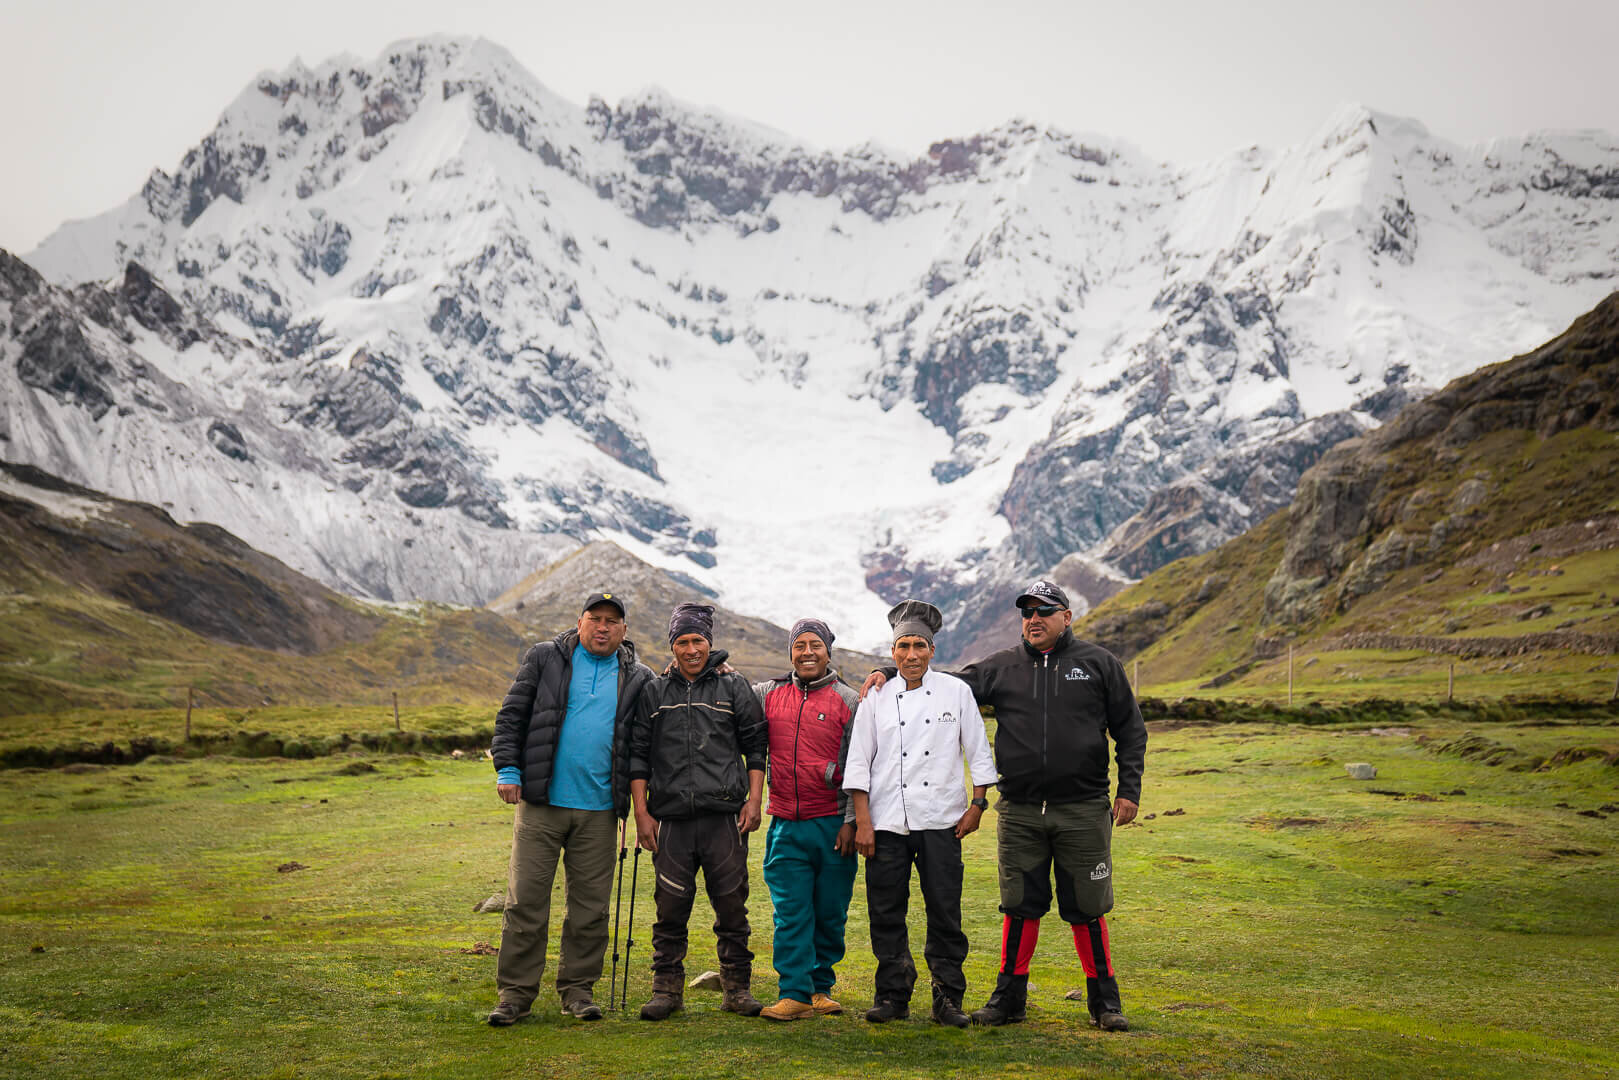 Our fabulous Killa Expedition family! Killa Expedition's team is made up of knowledgeable, passionate and experienced local guides and staff, with a strong commitment to responsible travel.